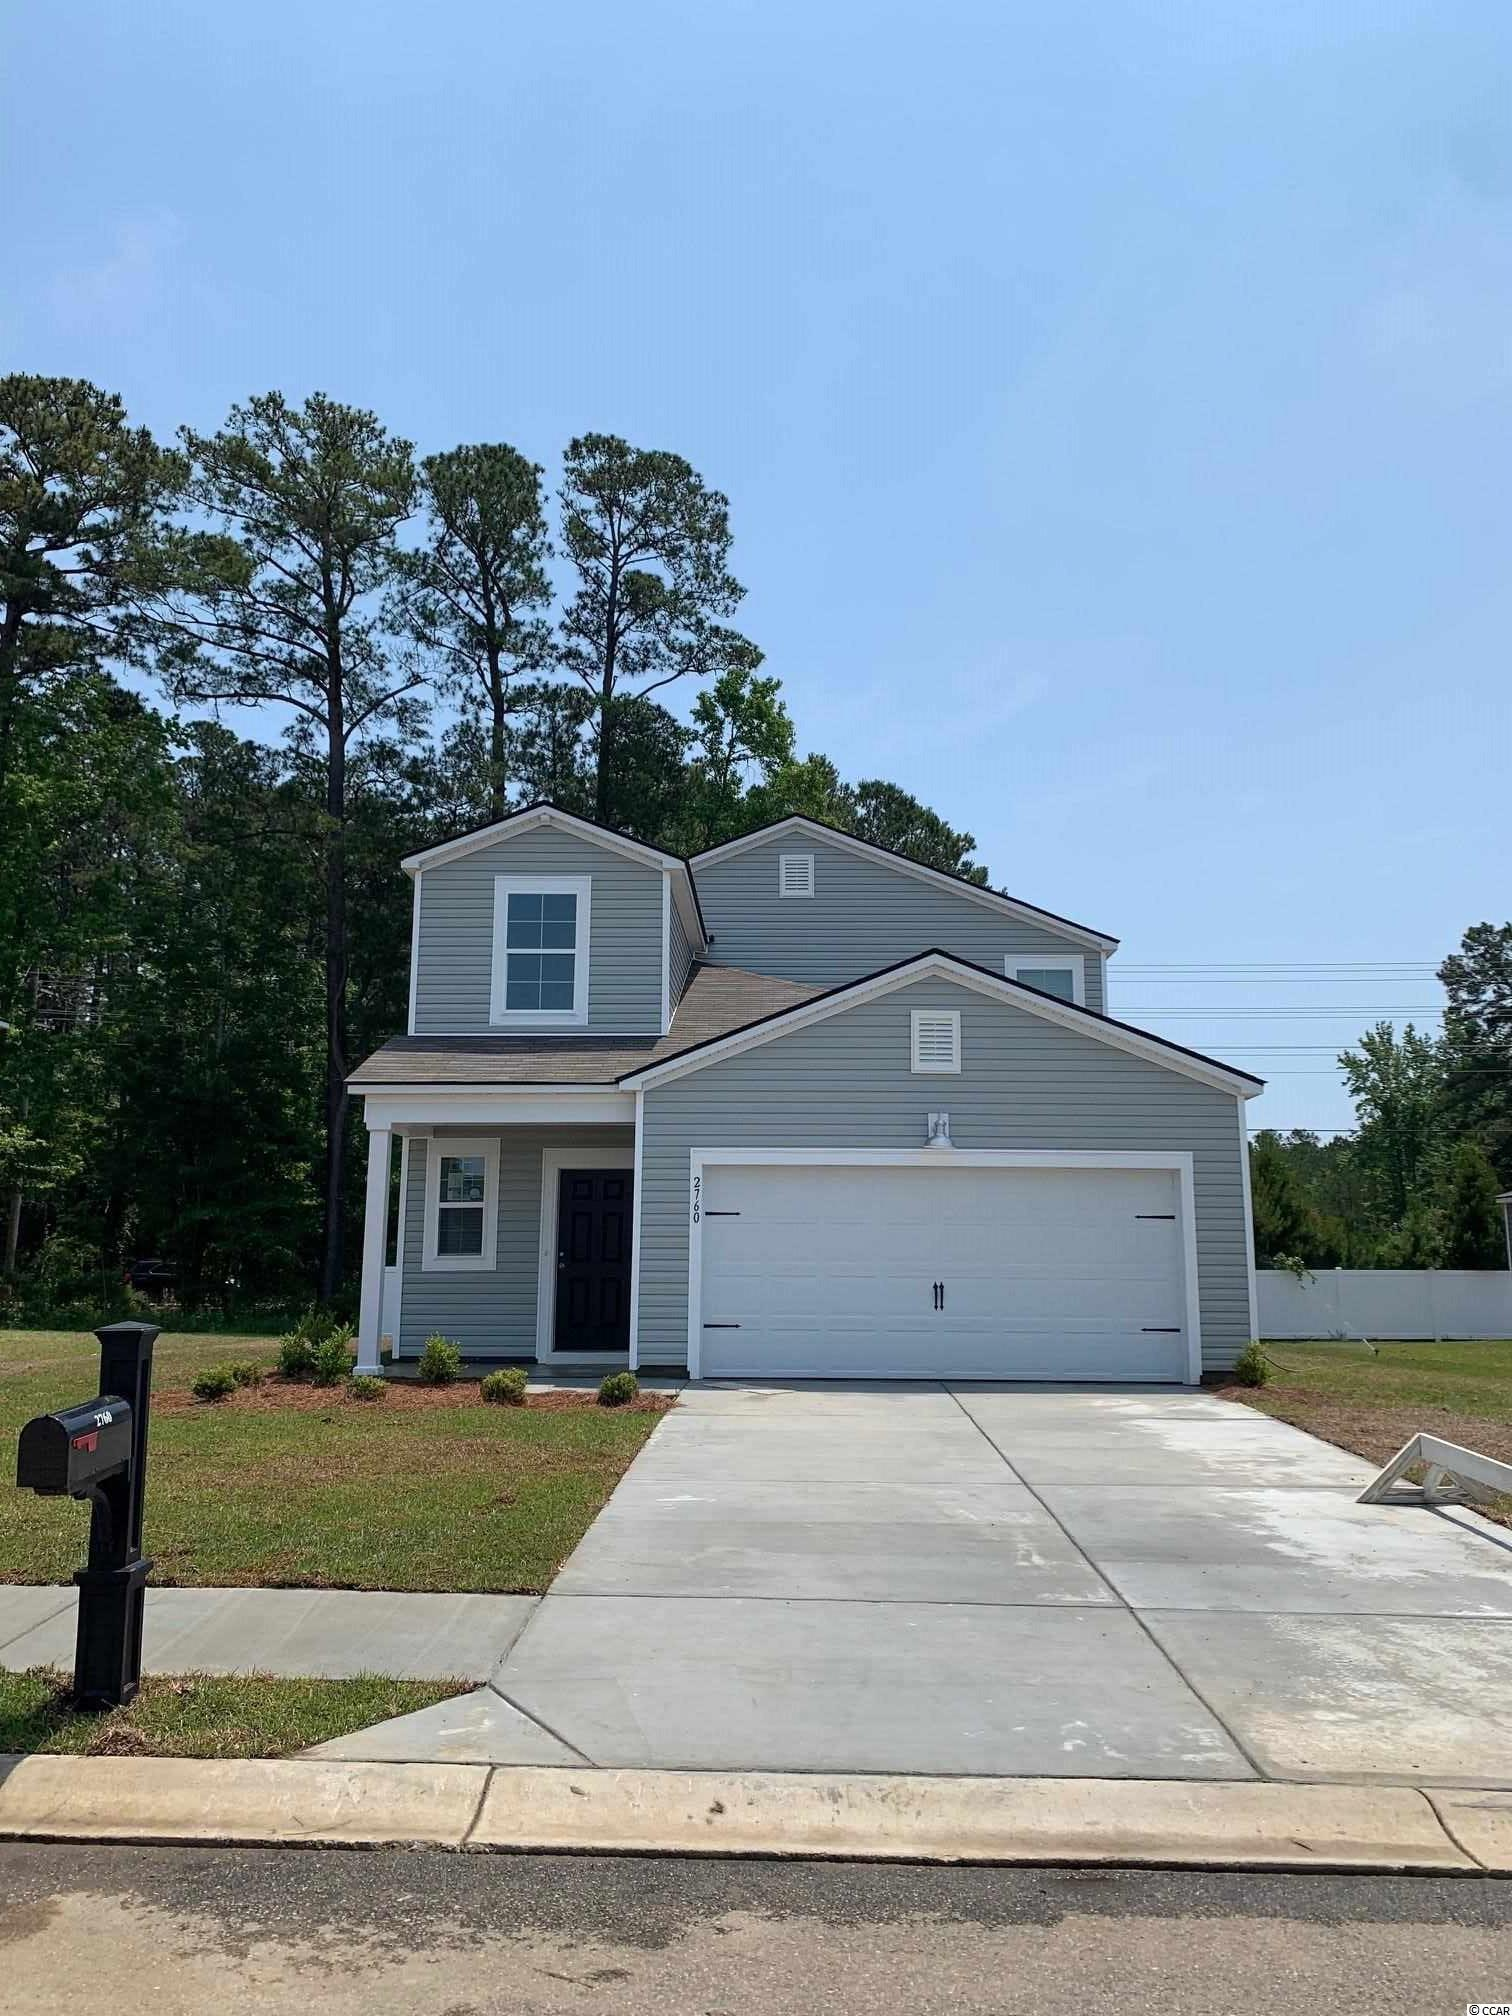 """Ready in April.  The Columbia is a Two Story floor plan that features 5 bedrooms, 2 bathrooms and a Powder Room, The Owners Suite is located on the ground floor, which includes a spacious Master Bath and an oversized walk in Closet. The Owners suite bathroom features double sinks an elevated vanity and a 5' shower.This open concept home hallmarks 36"""" stylish white cabinets, a 3 x 6 subway tile back splash in the kitchen, granite counter tops in the kitchen, Shaw laminate flooring in the main living areas, GE  Stainless steel appliances including a Gas Range, Microwave Range Hood, Dishwasher, and Disposal.  This home also features LED recess lighting, Moen faucets and towel hooks, elongated toilets with soft close lids, a Rinnai tankless gas water heater, and automatic garage door opener. Pictures are of a previously built home that may have additional upgrades and are for illustrative purposes only."""